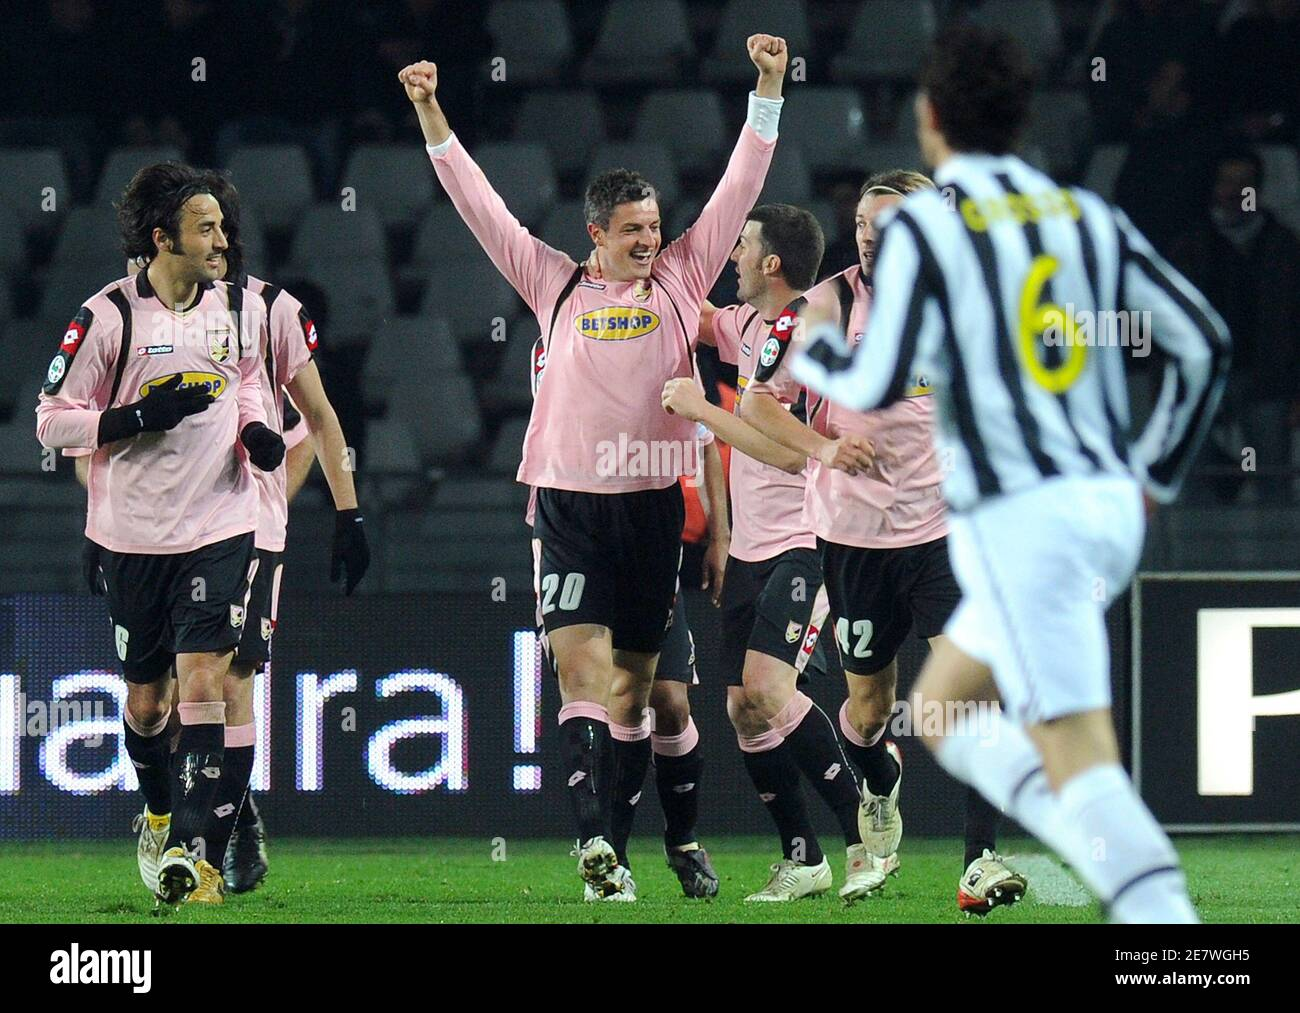 Palermo's Igor Budan (C) celebrates after scoring a second goal against Juventus during their Italian Serie A soccer match at the Olympic stadium in Turin February 28, 2010. REUTERS/Paolo Bona (ITALY - Tags: SPORT SOCCER) Banque D'Images